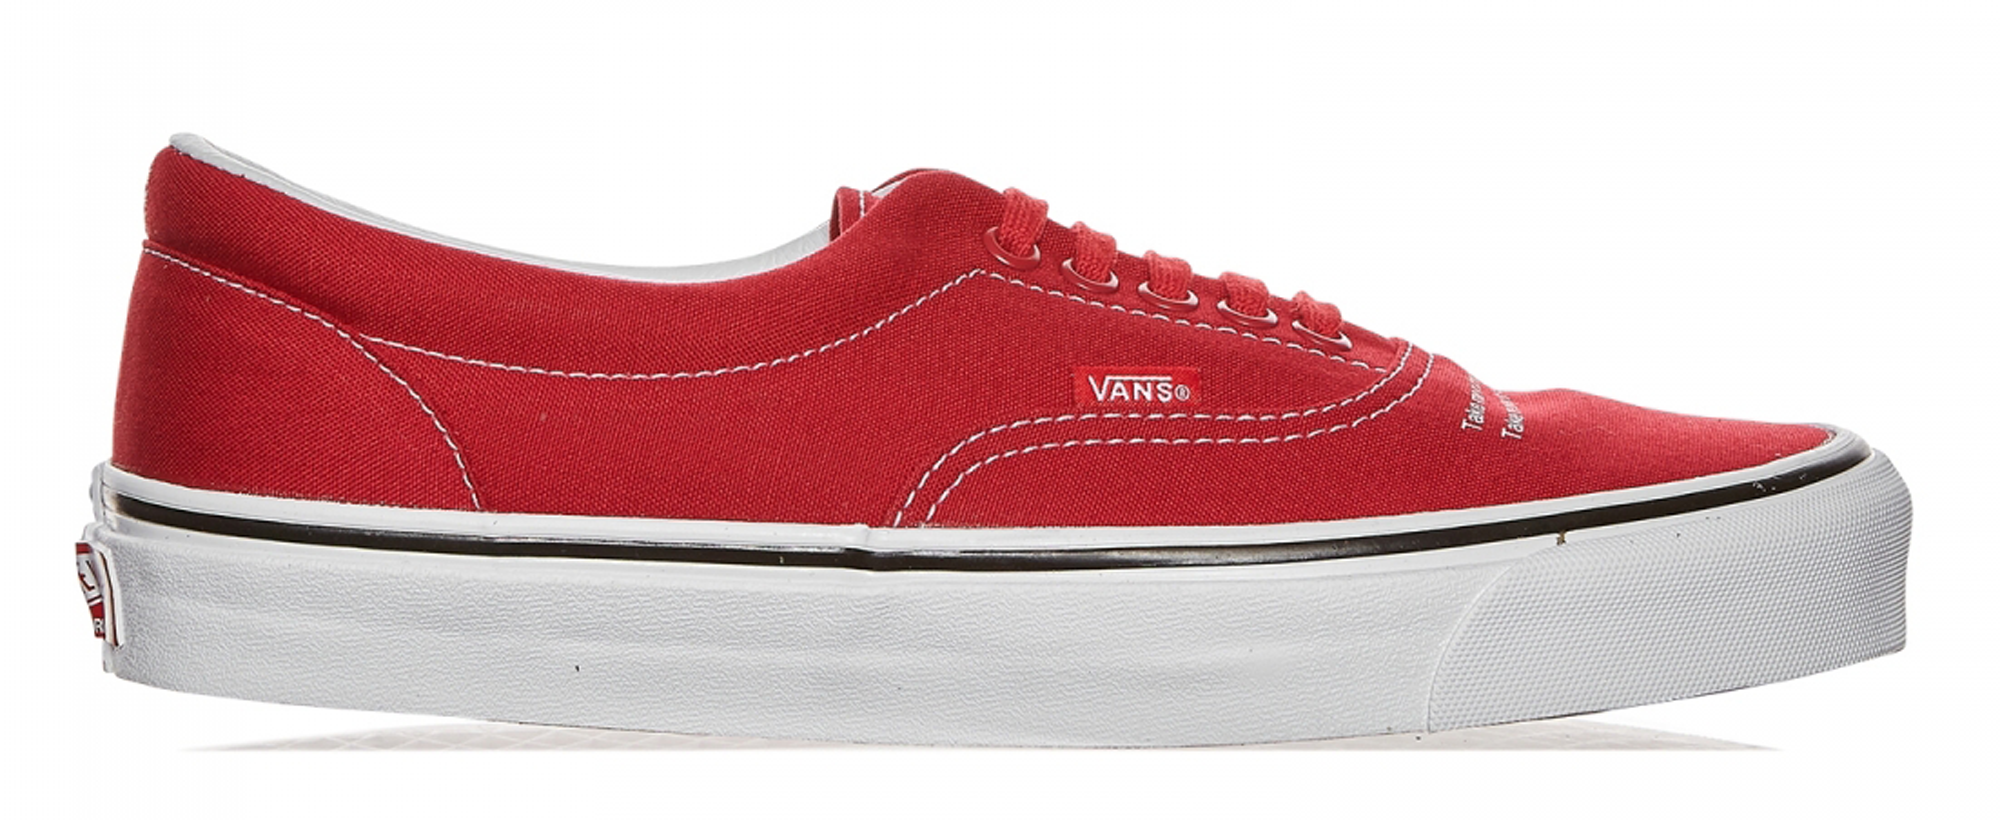 29ceb6cdb3ab7f Vans Vault OG Era LX Undercover Colorway  Red White Style  VA3CXNNTL  Release Date  02.04.17